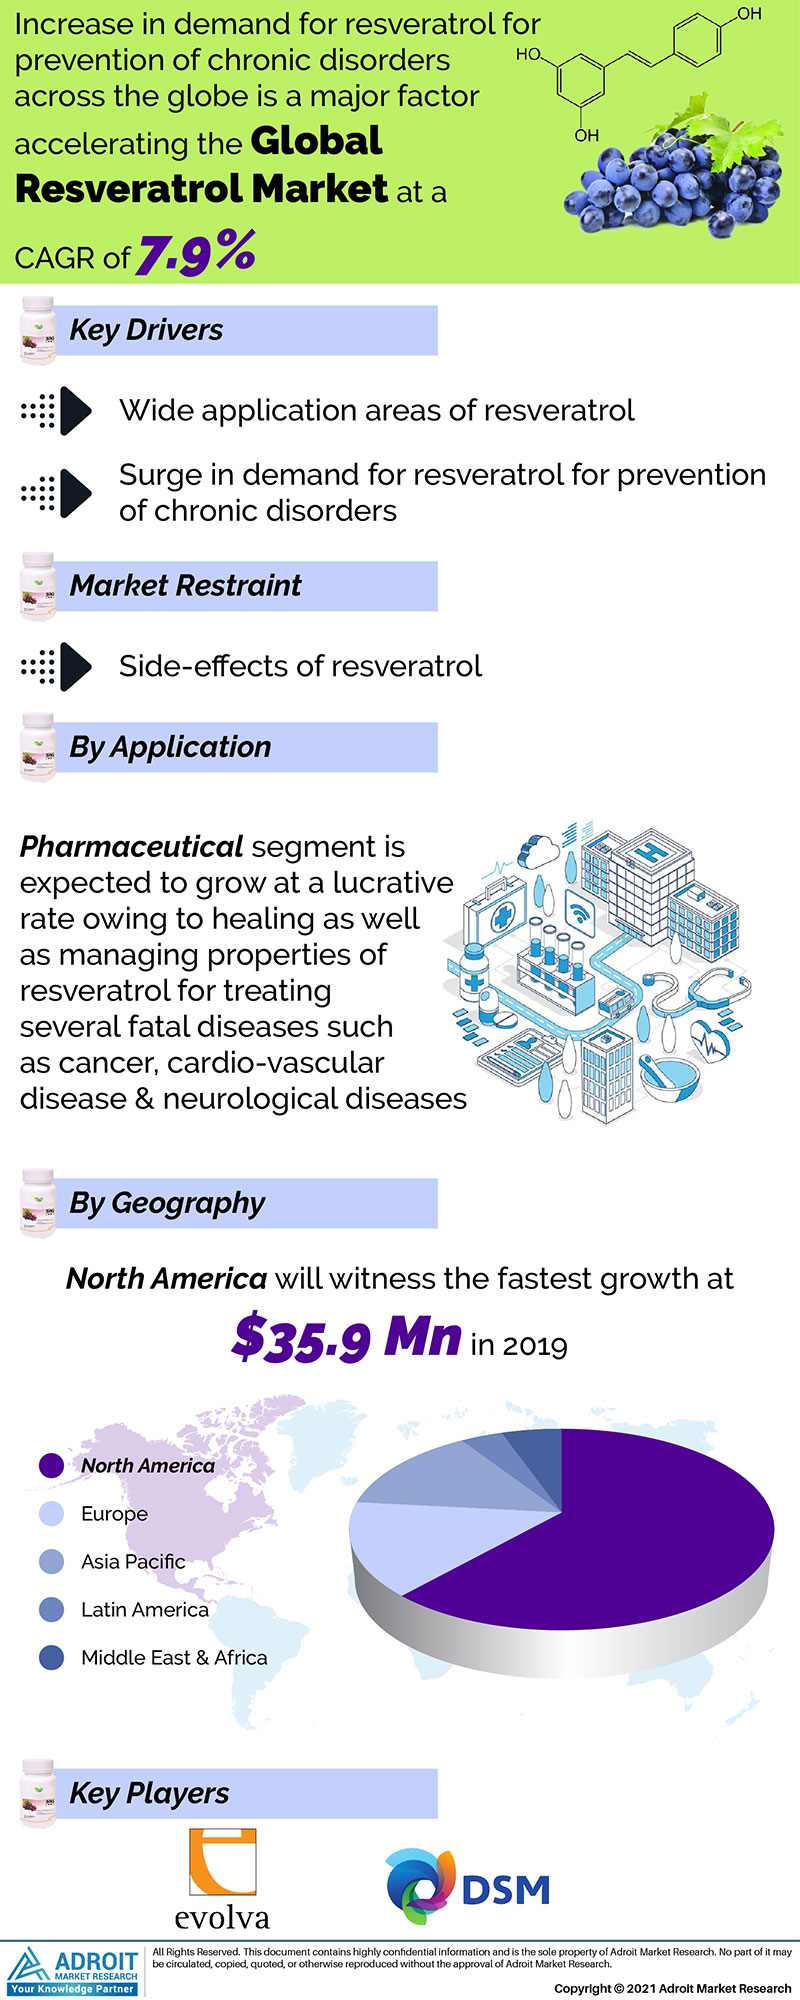 Resveratrol Market Size 2017 By Application, Product, Region and Forecast 2019 to 2025